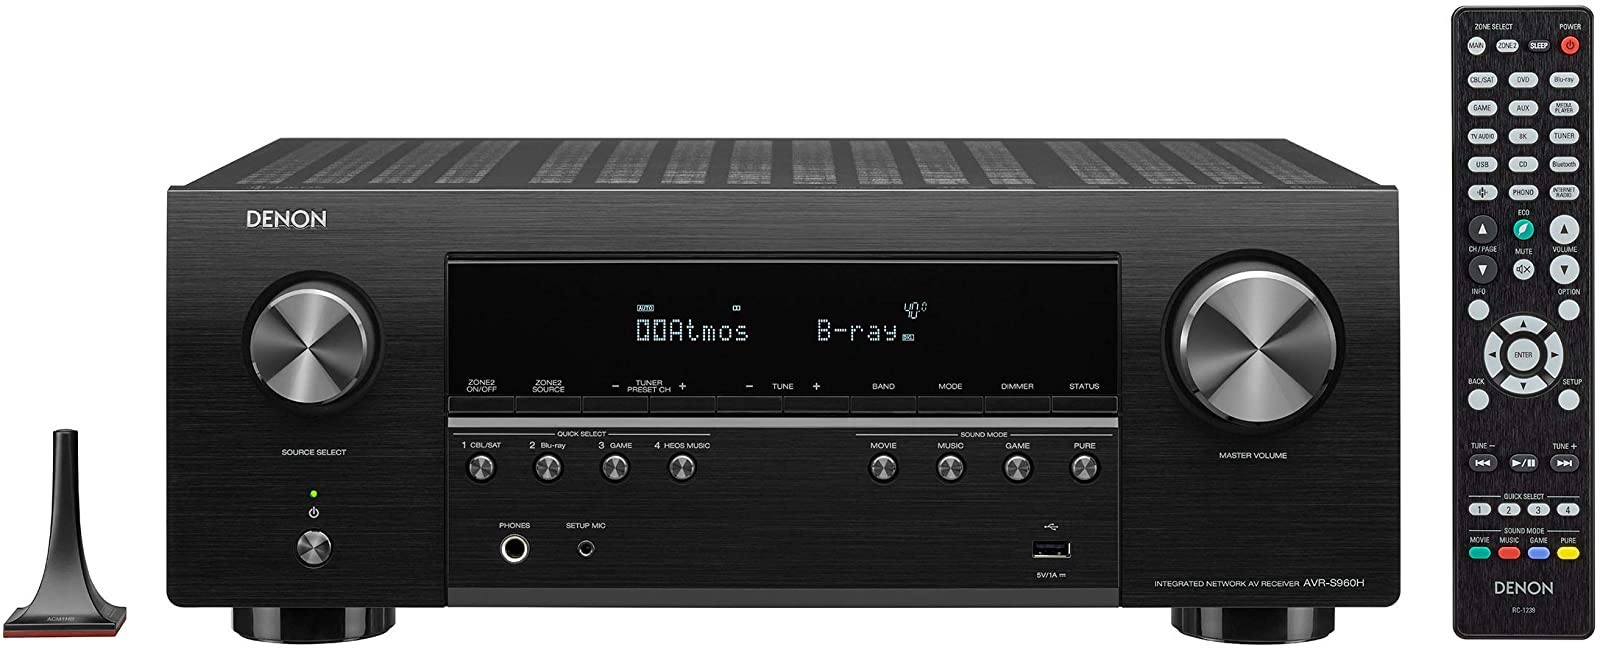 Denon AVR-S960H 8K A/V Receiver Front View with Remote Control